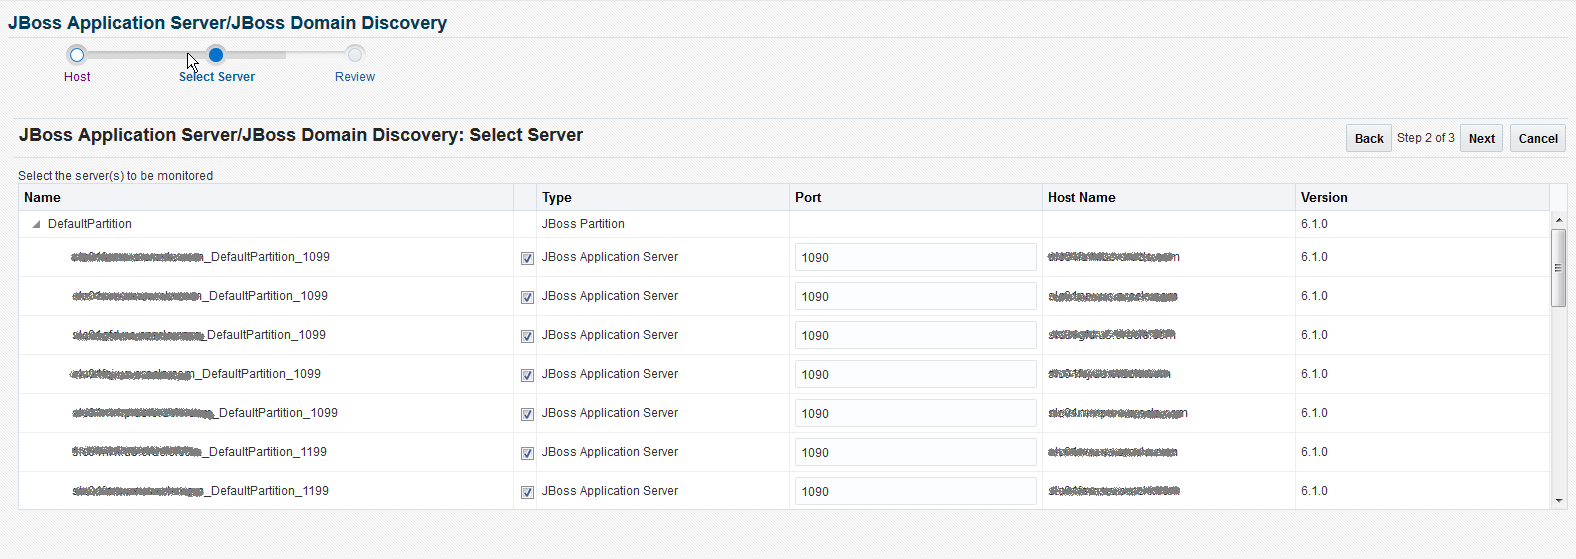 Discovering and Monitoring JBoss Application Server